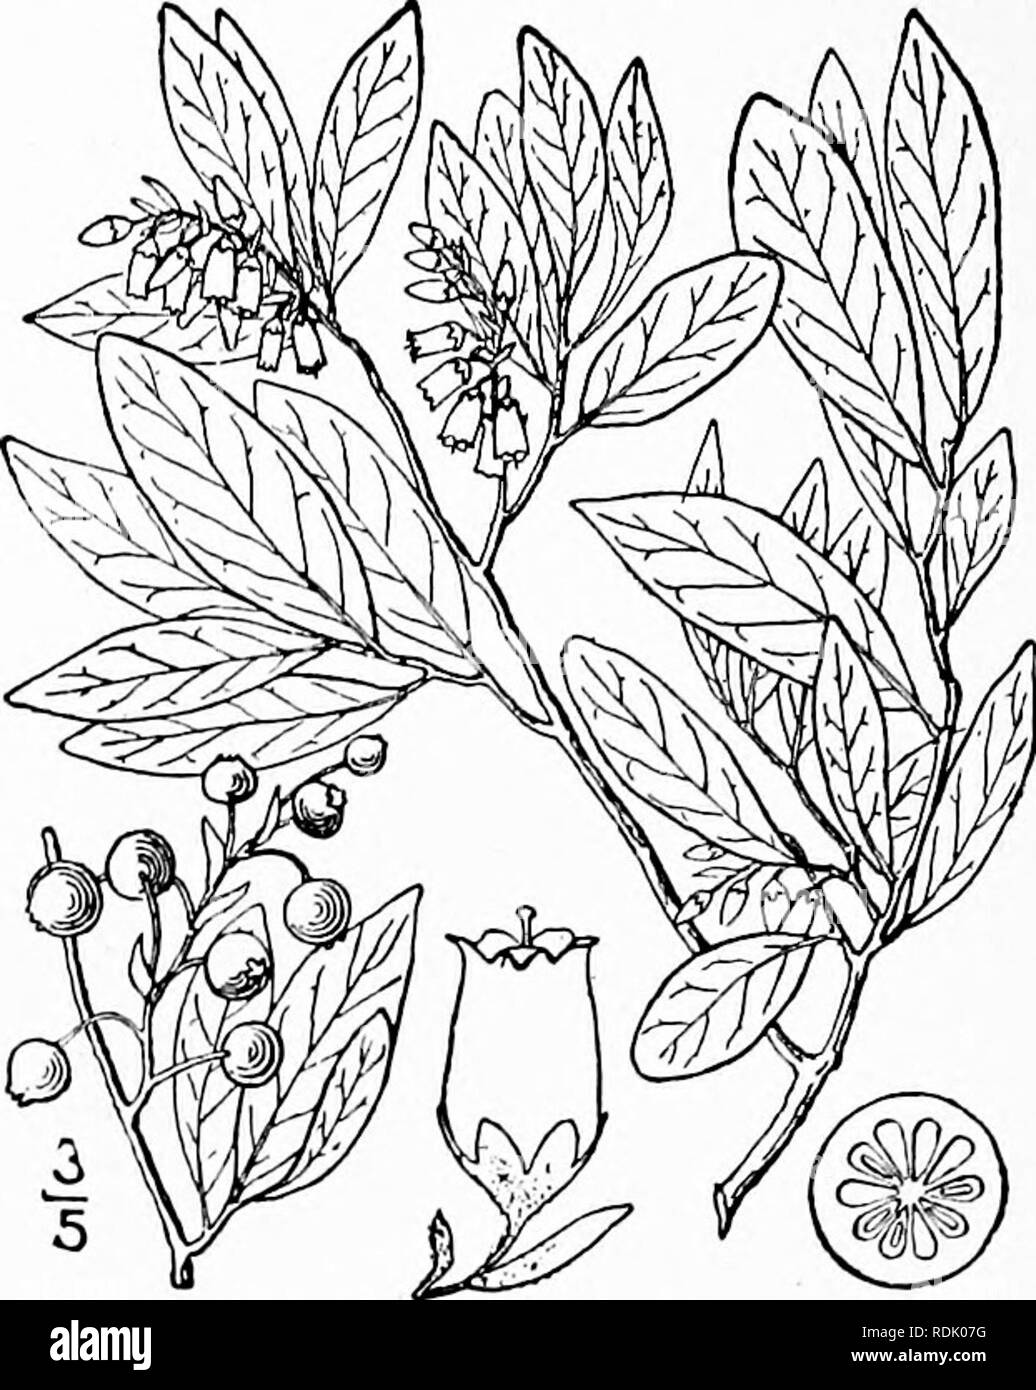 . An illustrated flora of the northern United States, Canada and the British possessions, from Newfoundland to the parallel of the southern boundary of Virginia, and from the Atlantic Ocean westward to the 102d meridian. Botany; Botany. 696 VACCINIACEAE. Vol. II.. tucky. Black-snap. Crackers. 2. Gaylussacia baccata (Wang.) K. Koch. Black or High-bush Huckleberry. Fig. 3253. Andromeda baccata Wang. Beitr. iii, pi. 30. f. 6g. 1787. Vaccinium resinosum Ait. Hort. Kew. 2:12. 1789. G. resinosa T. & G.; Torr. FI. N. Y. i: 449. 1843. G. baccata K. Koch, Dendr, 2: 93. 1869-72. A shrub, i°-3° high, - Stock Image